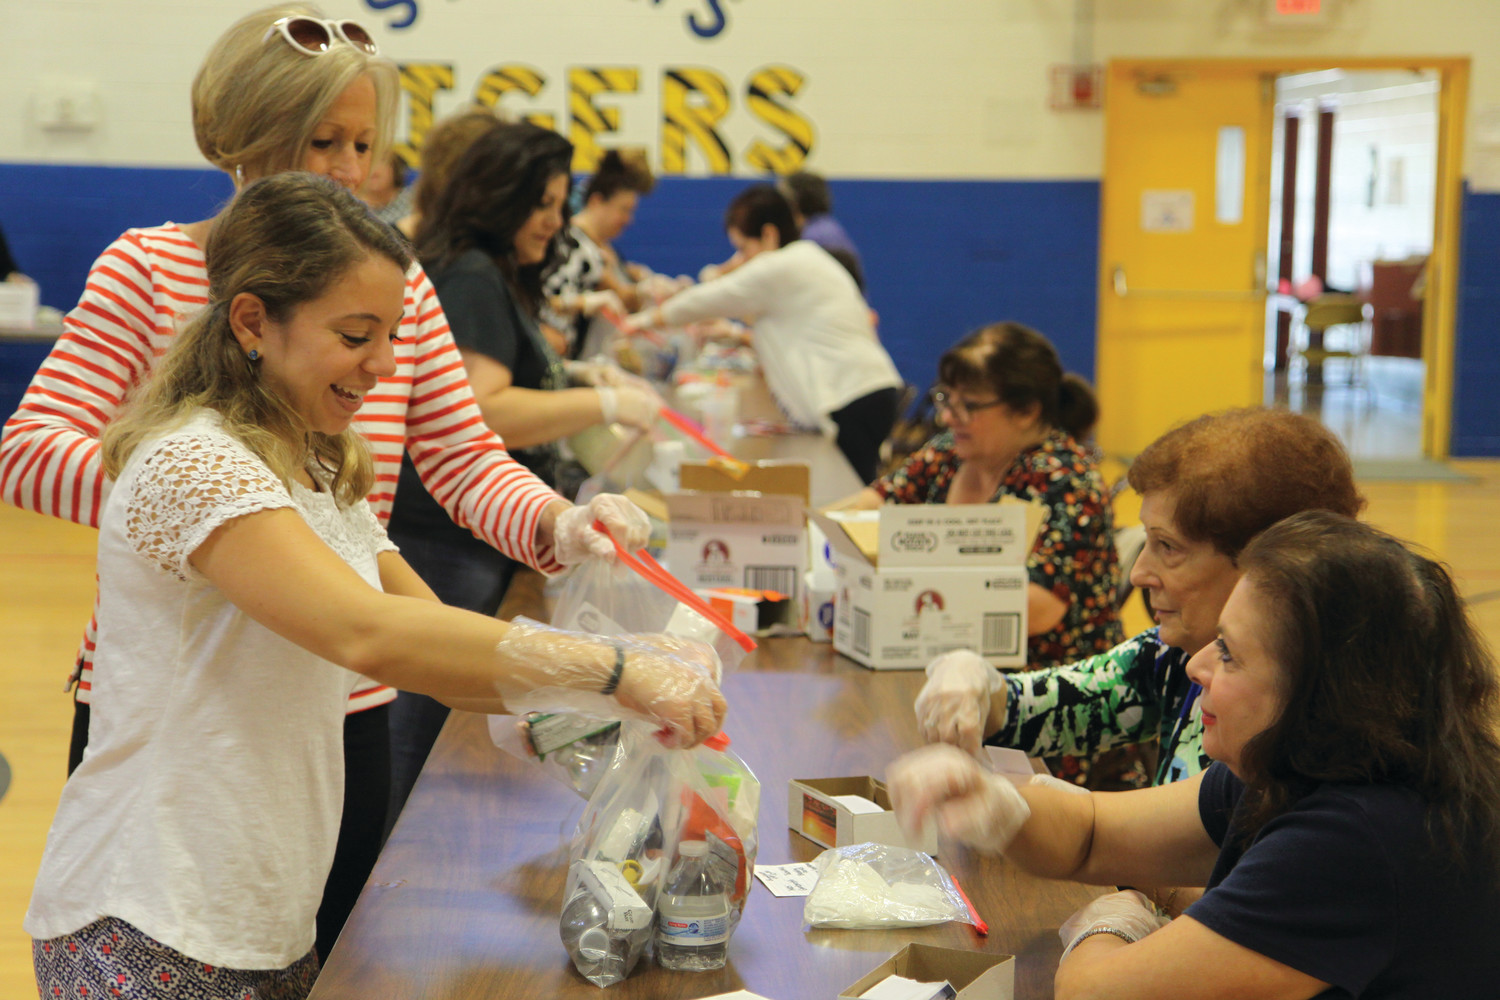 Kaitlyn DiTraglia (left) collects a prayer card for a bag lunch from fellow volunteers during a service project at St. Mary Parish Center, Cranston, on Sunday, September 24.